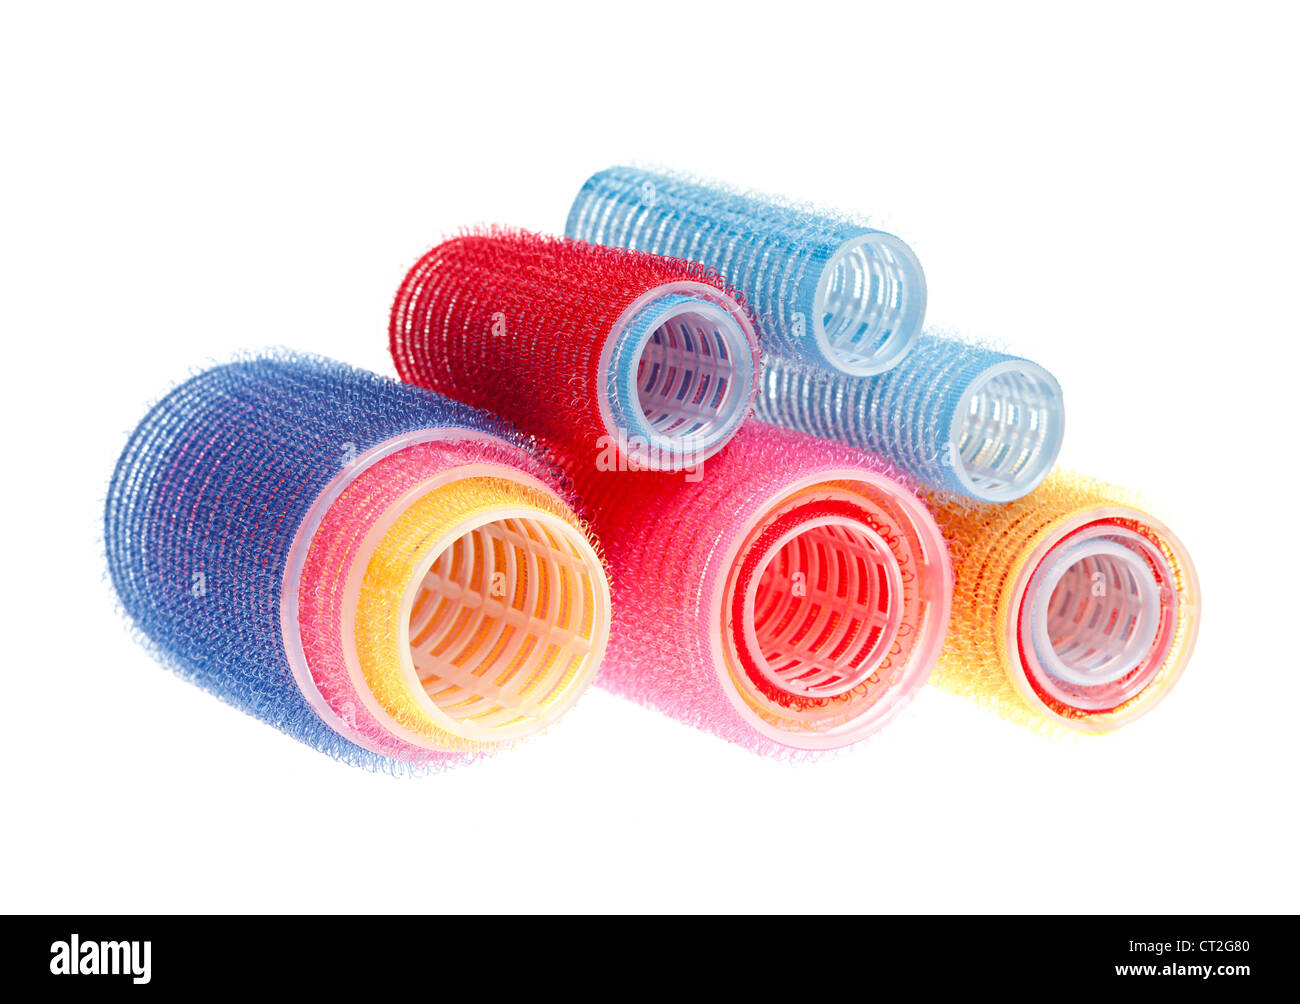 Colorful hair rollers stacked isolated on white background - Stock Image